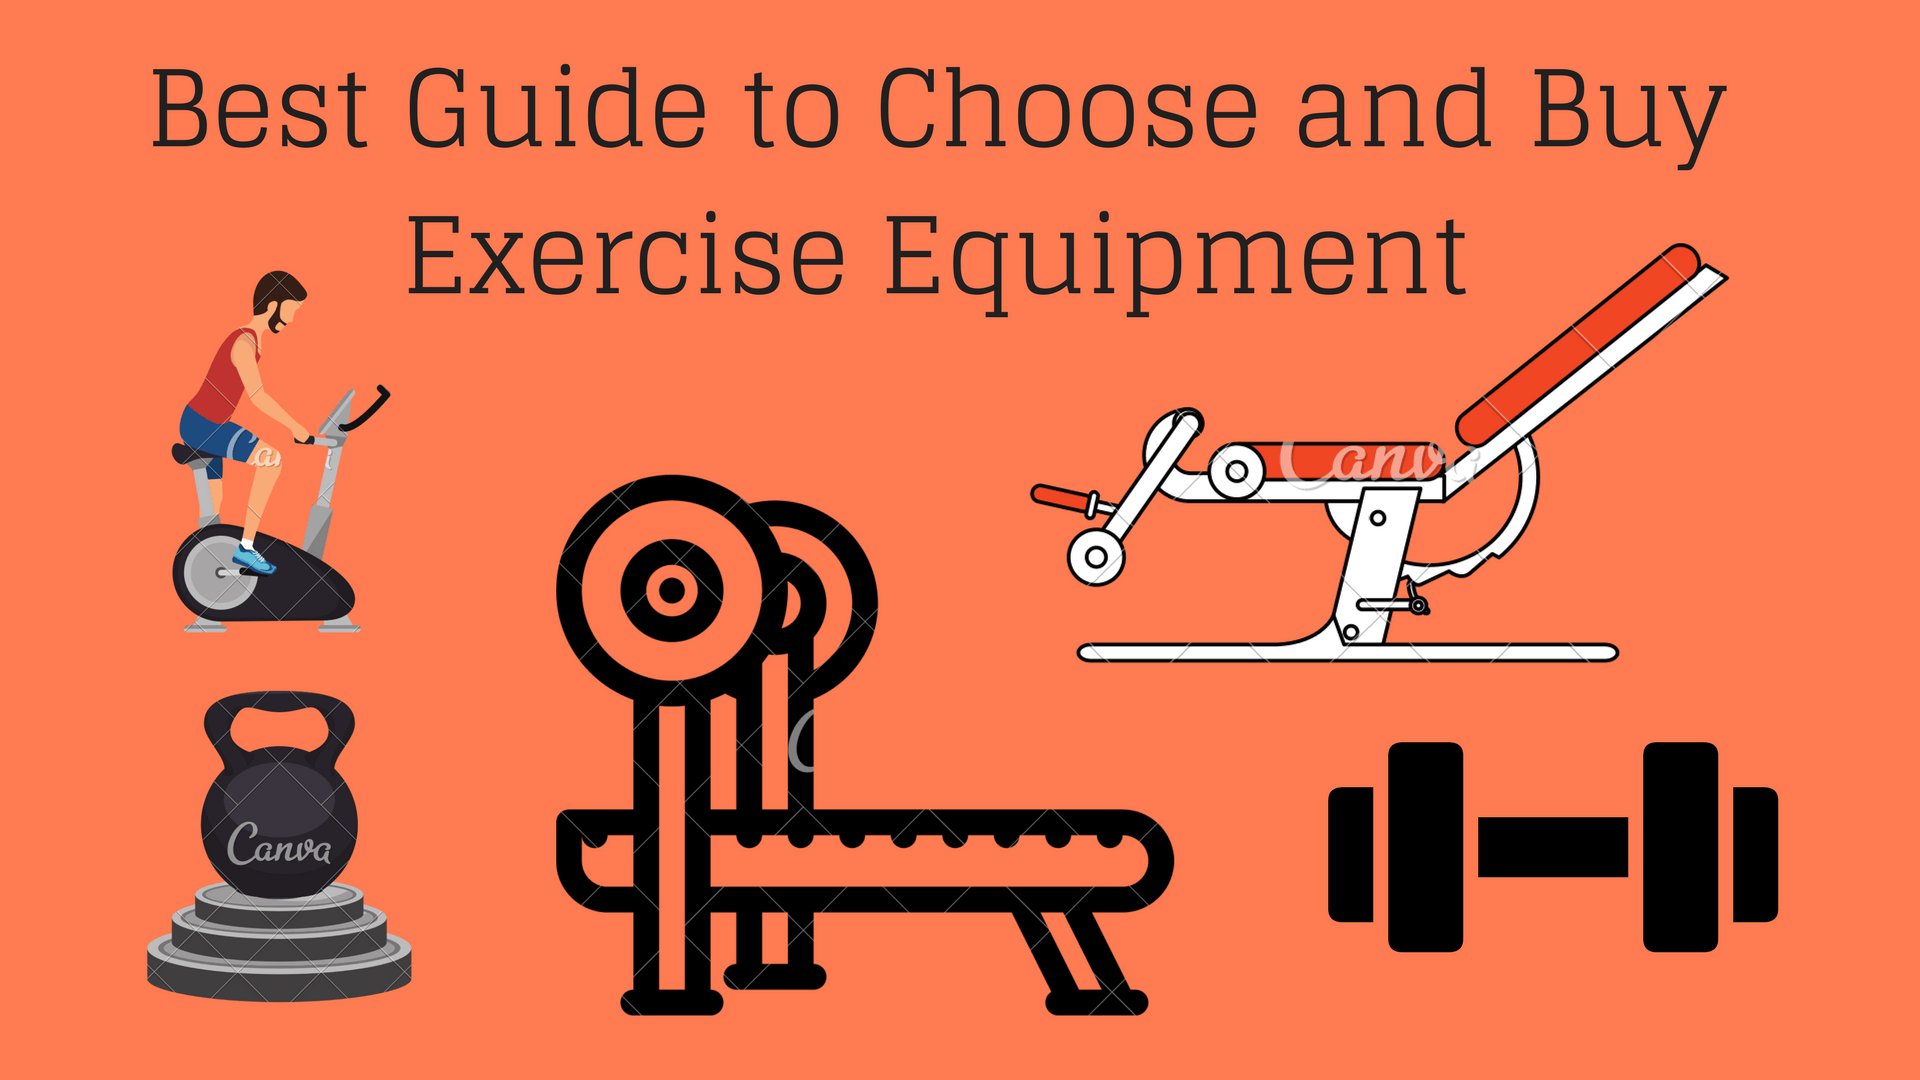 Best Guide Exercise Equipment